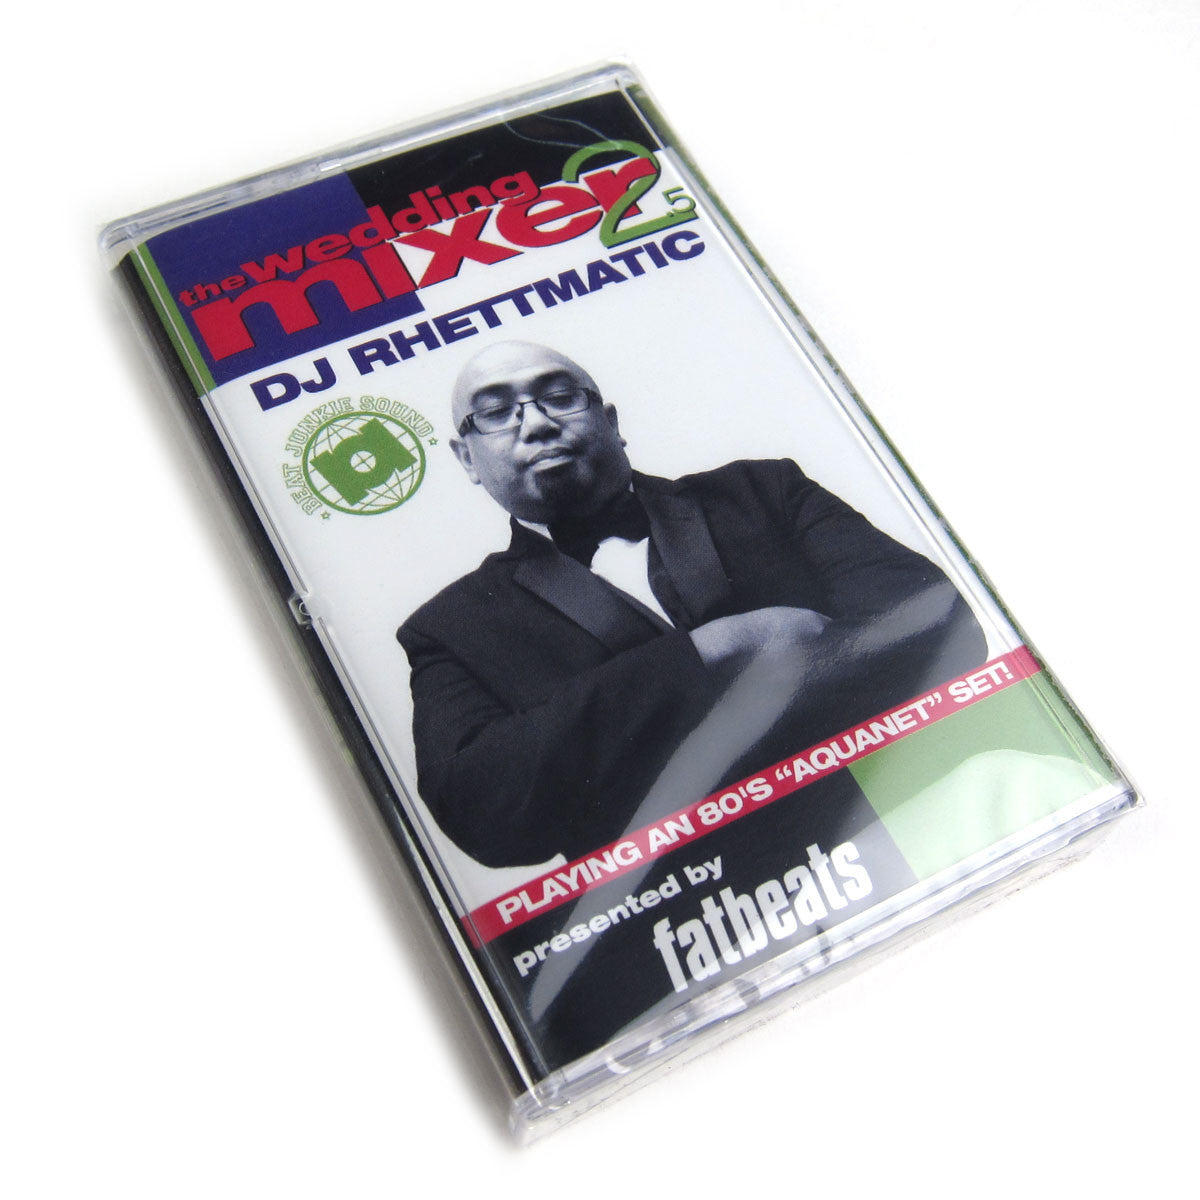 Rhettmatic: The Wedding Mixer 2.5 Cassette